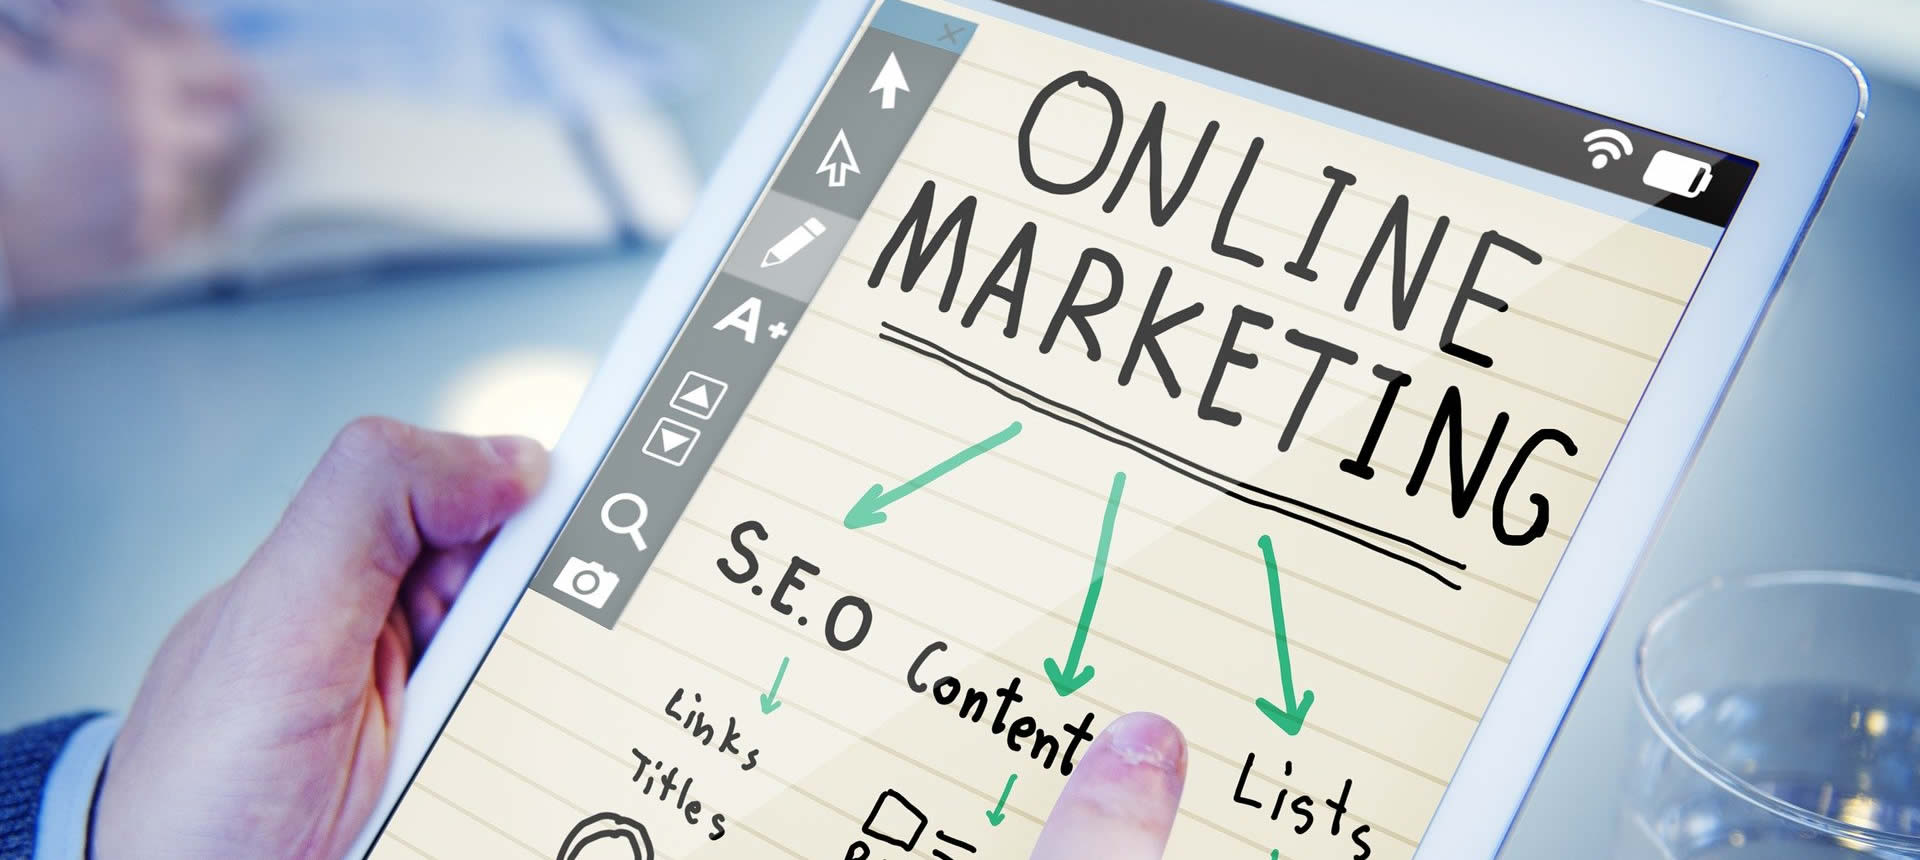 Online Marketing e SEO